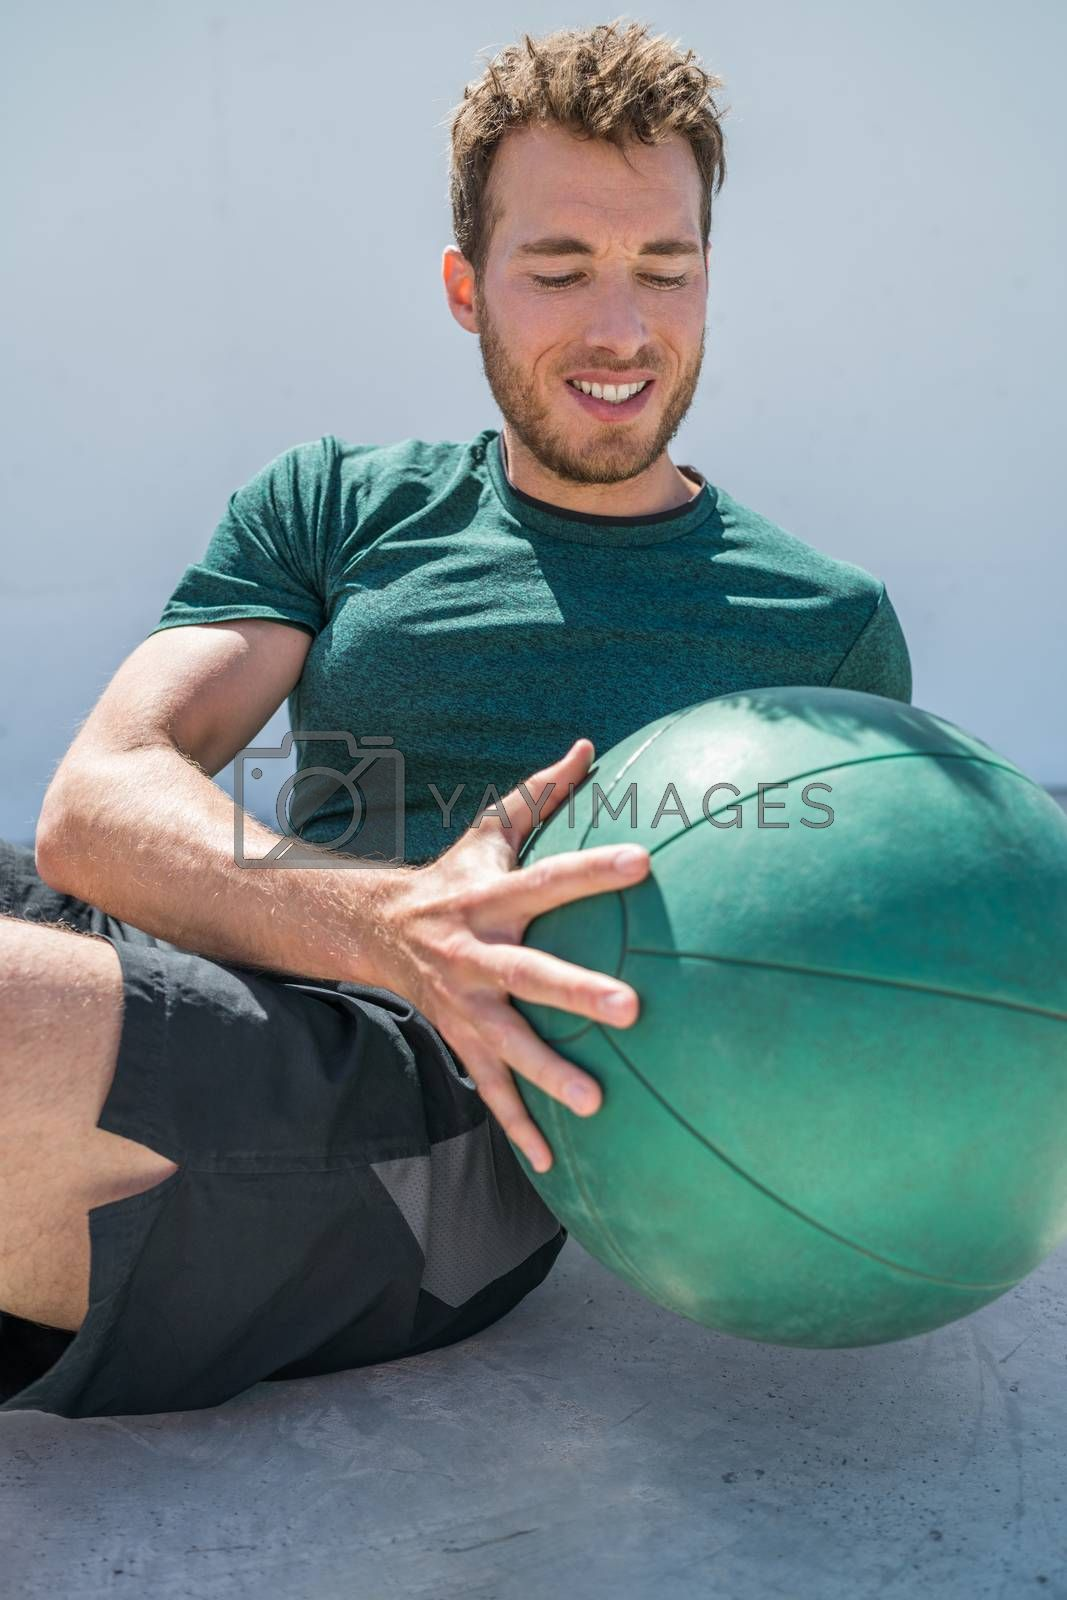 Gym workout with medicine ball exercise man doing russian twist exercises. Athlete working out doing exercises training oblique abs muscles on fitness centre floor.